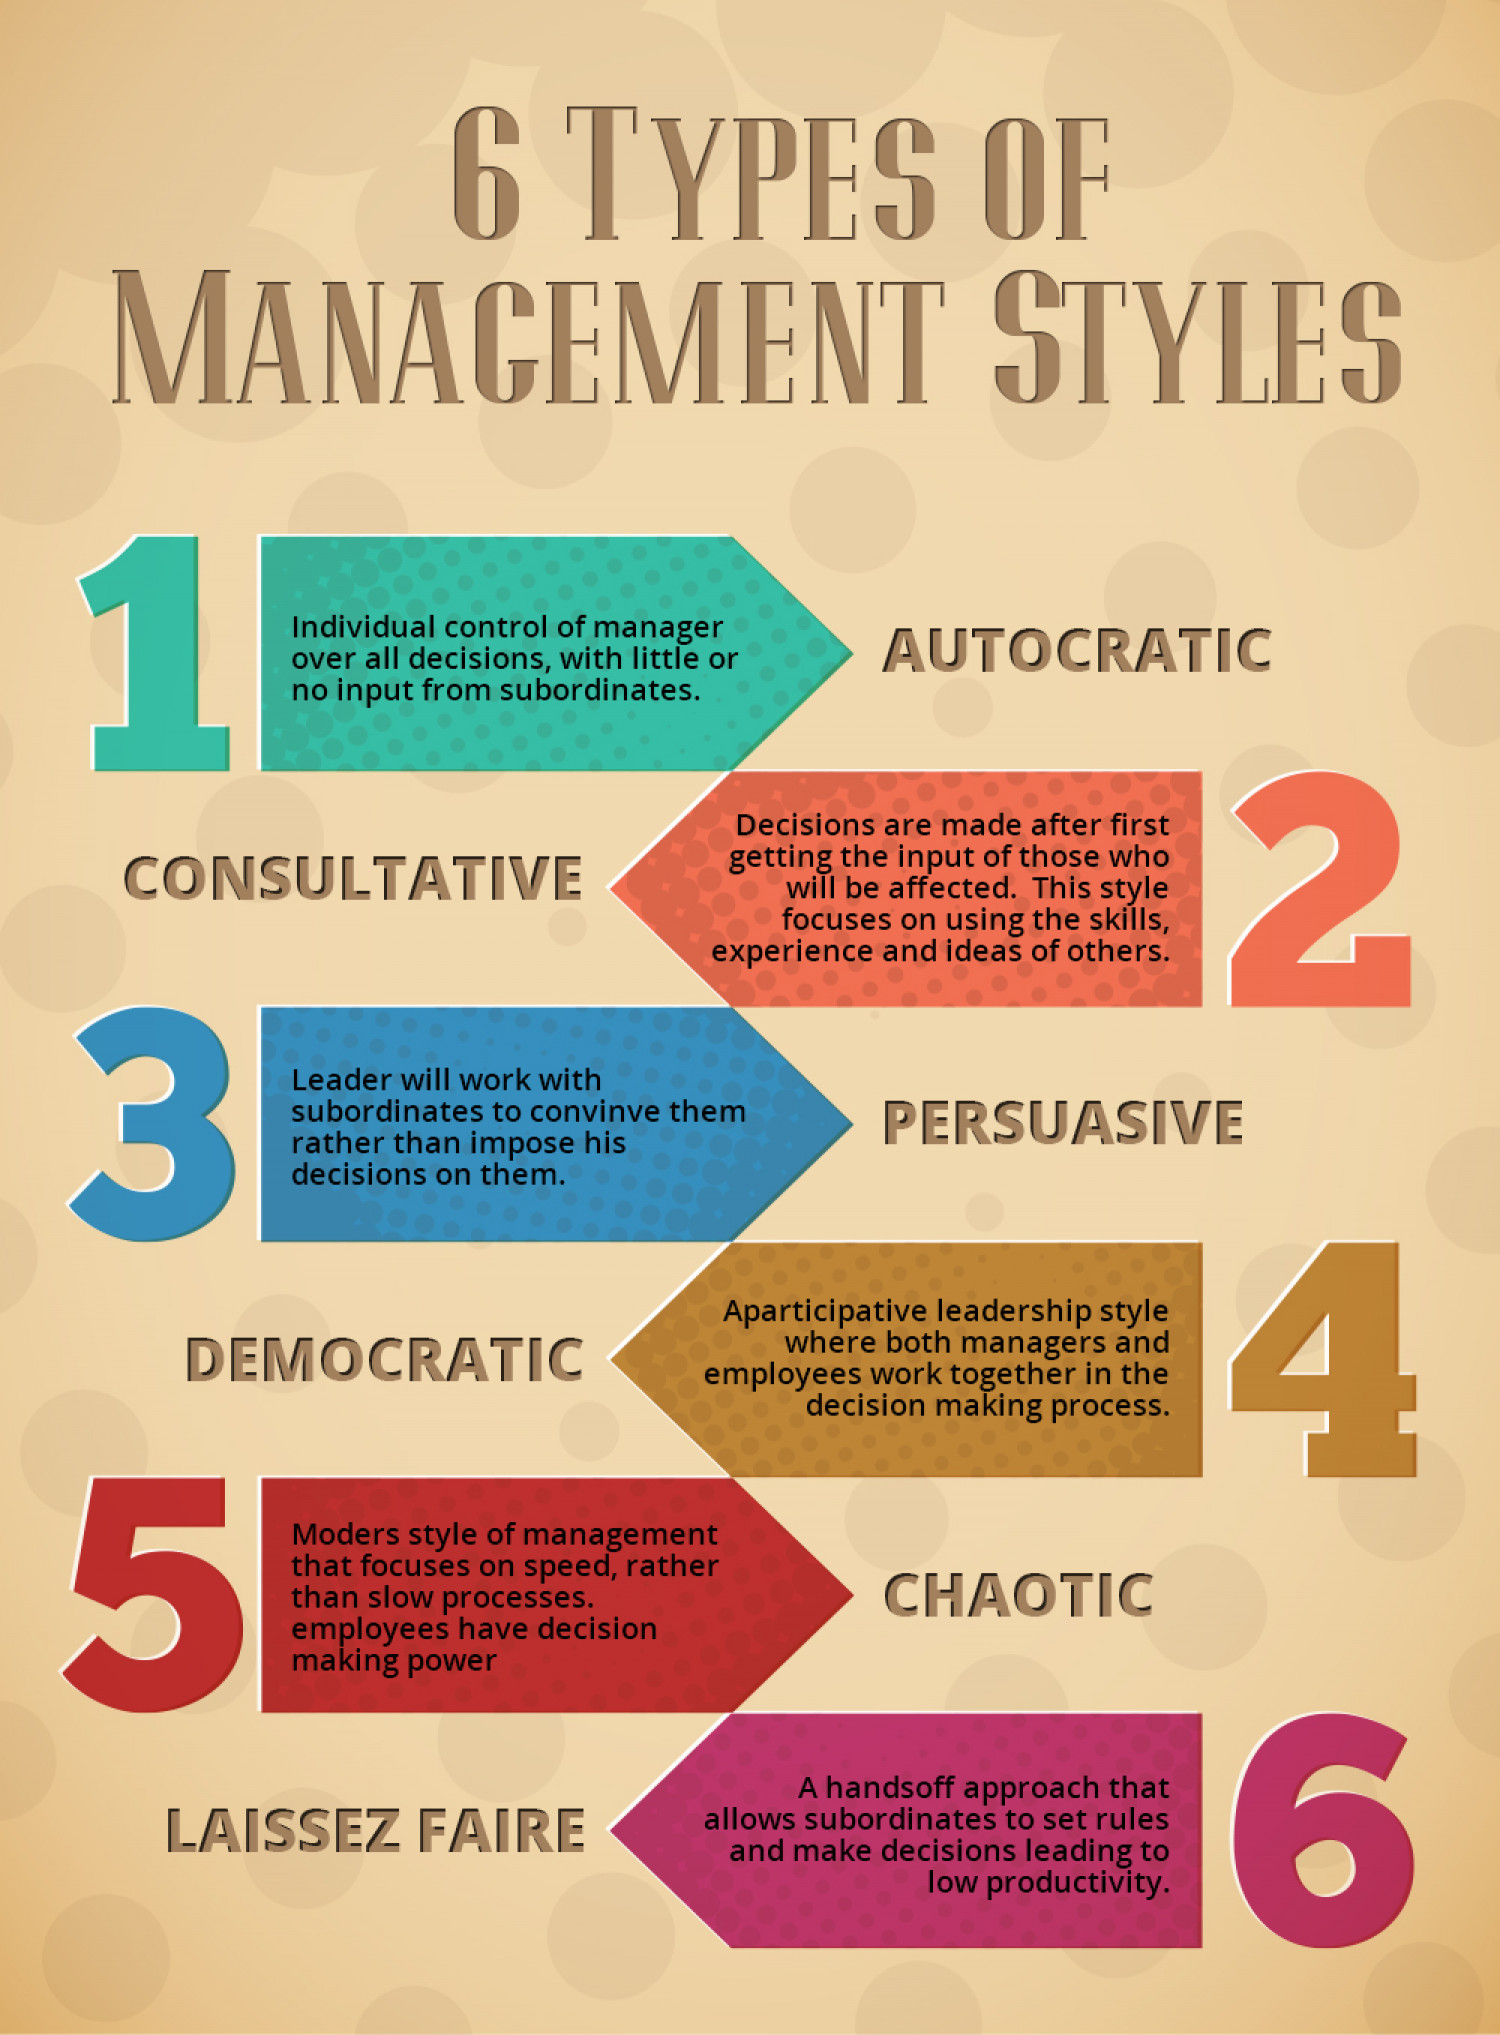 management styles in organizations Avoid using this management style in organizations or businesses that are output-driven, where the future of the company solely depends on the performance organizations have goals and objectives that they are working to achieve with the pacesetting management style, the manager aims to.